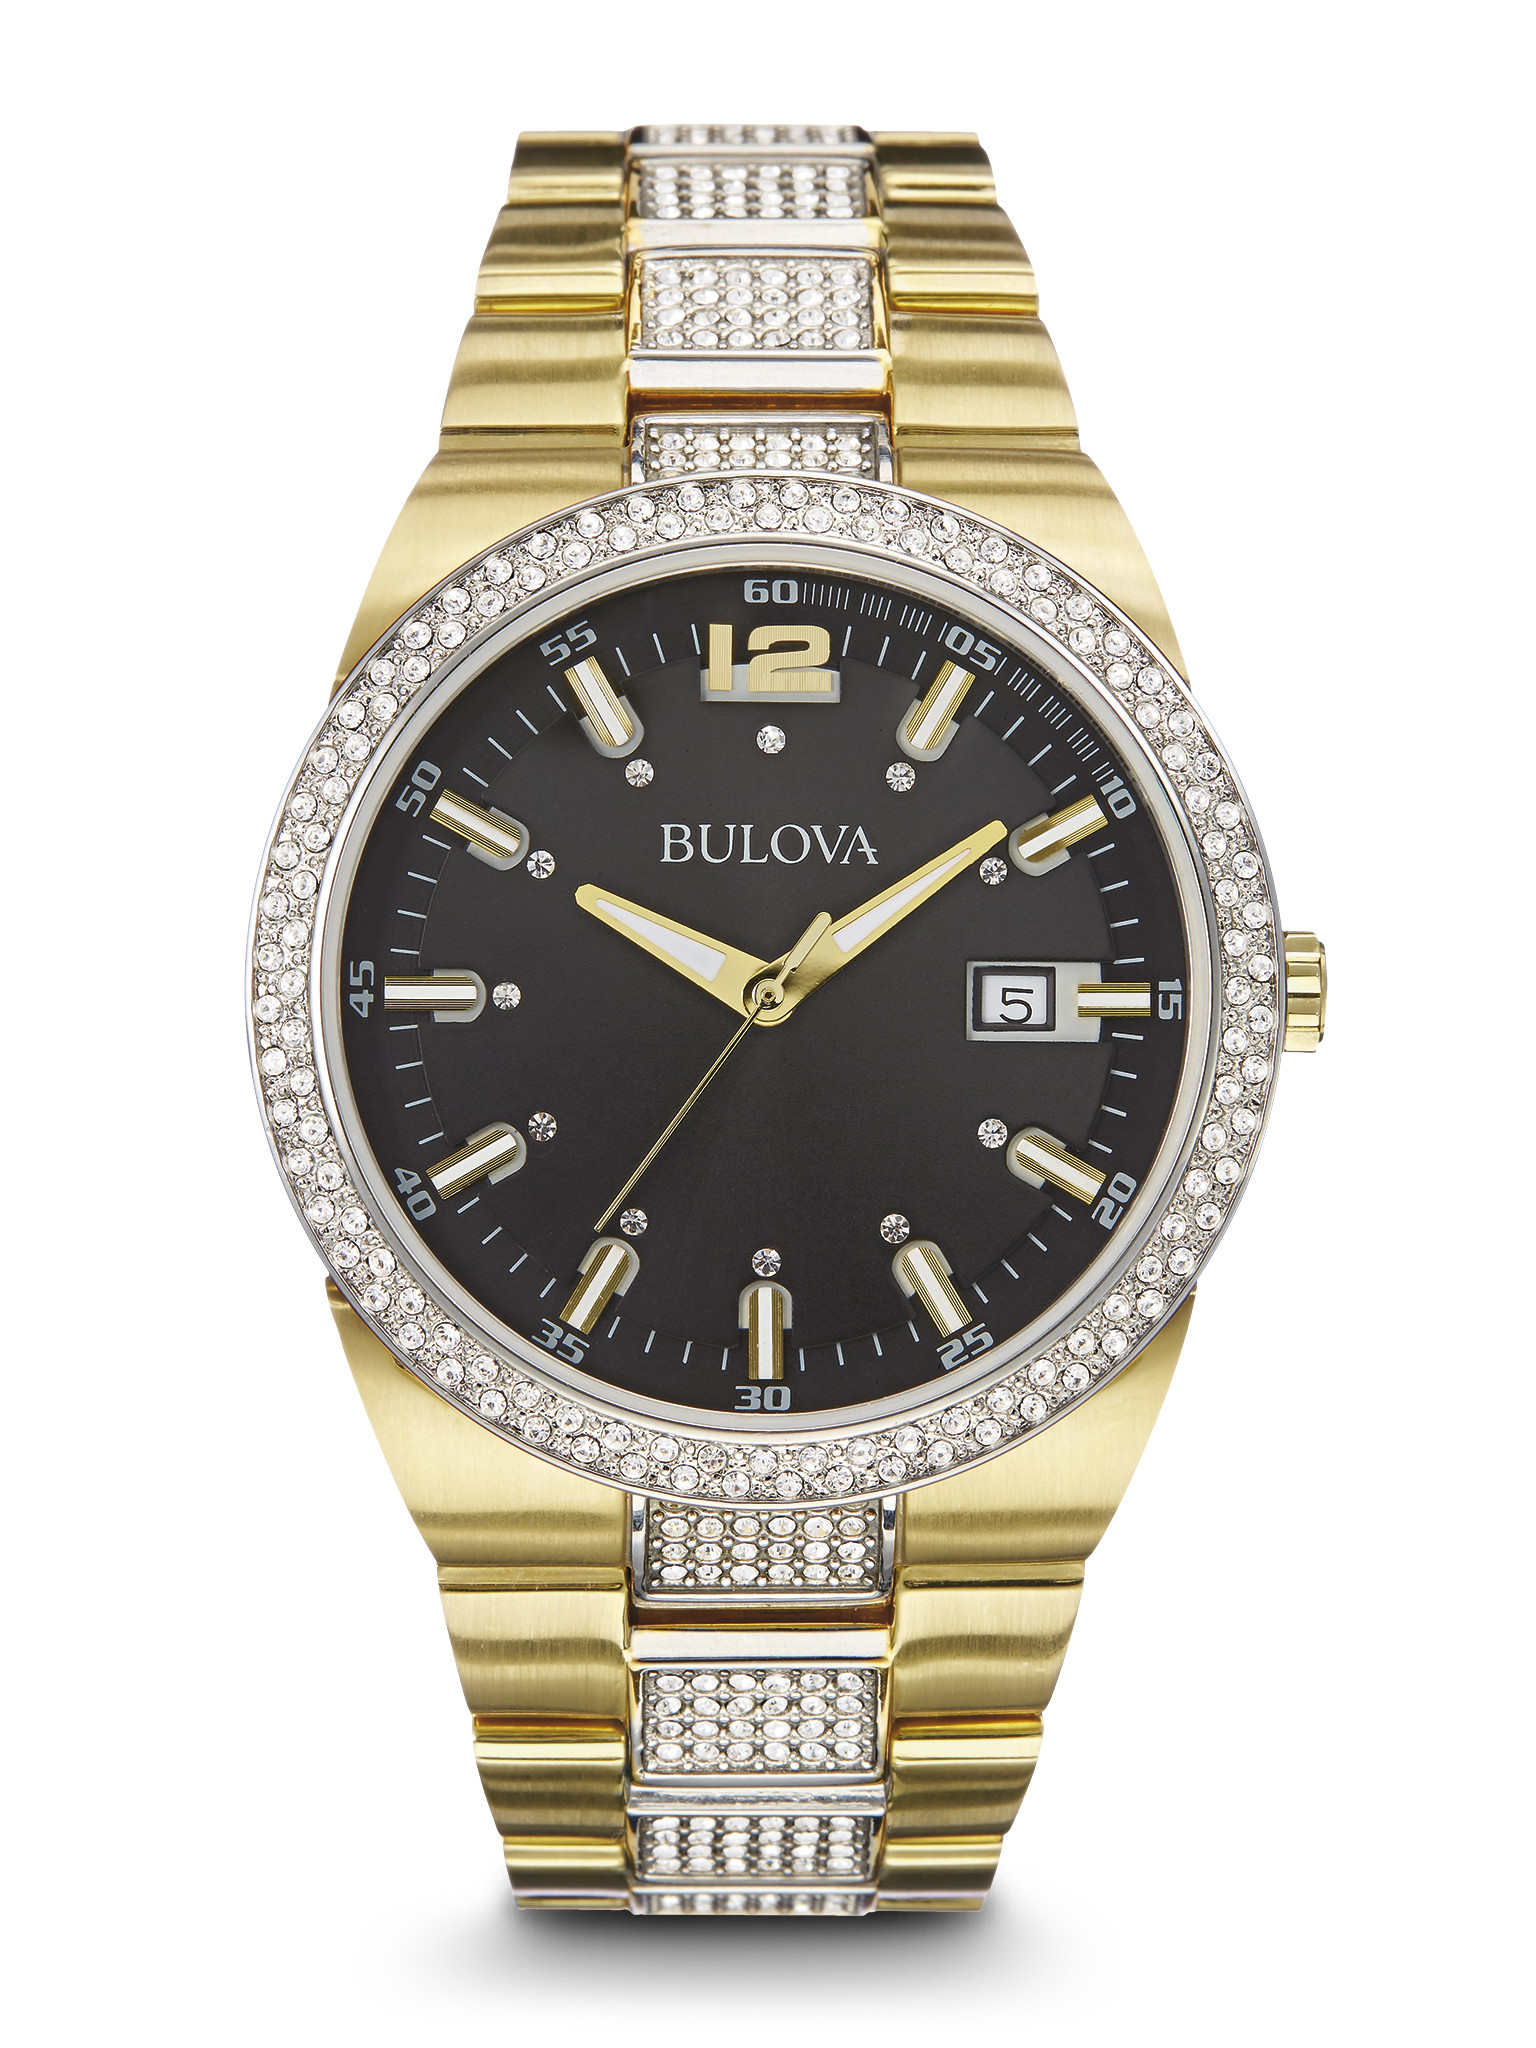 Bulova 98b235 men 39 s crystal watch long island ny men 39 s bulova watches contempo jewelers for Crystal watches